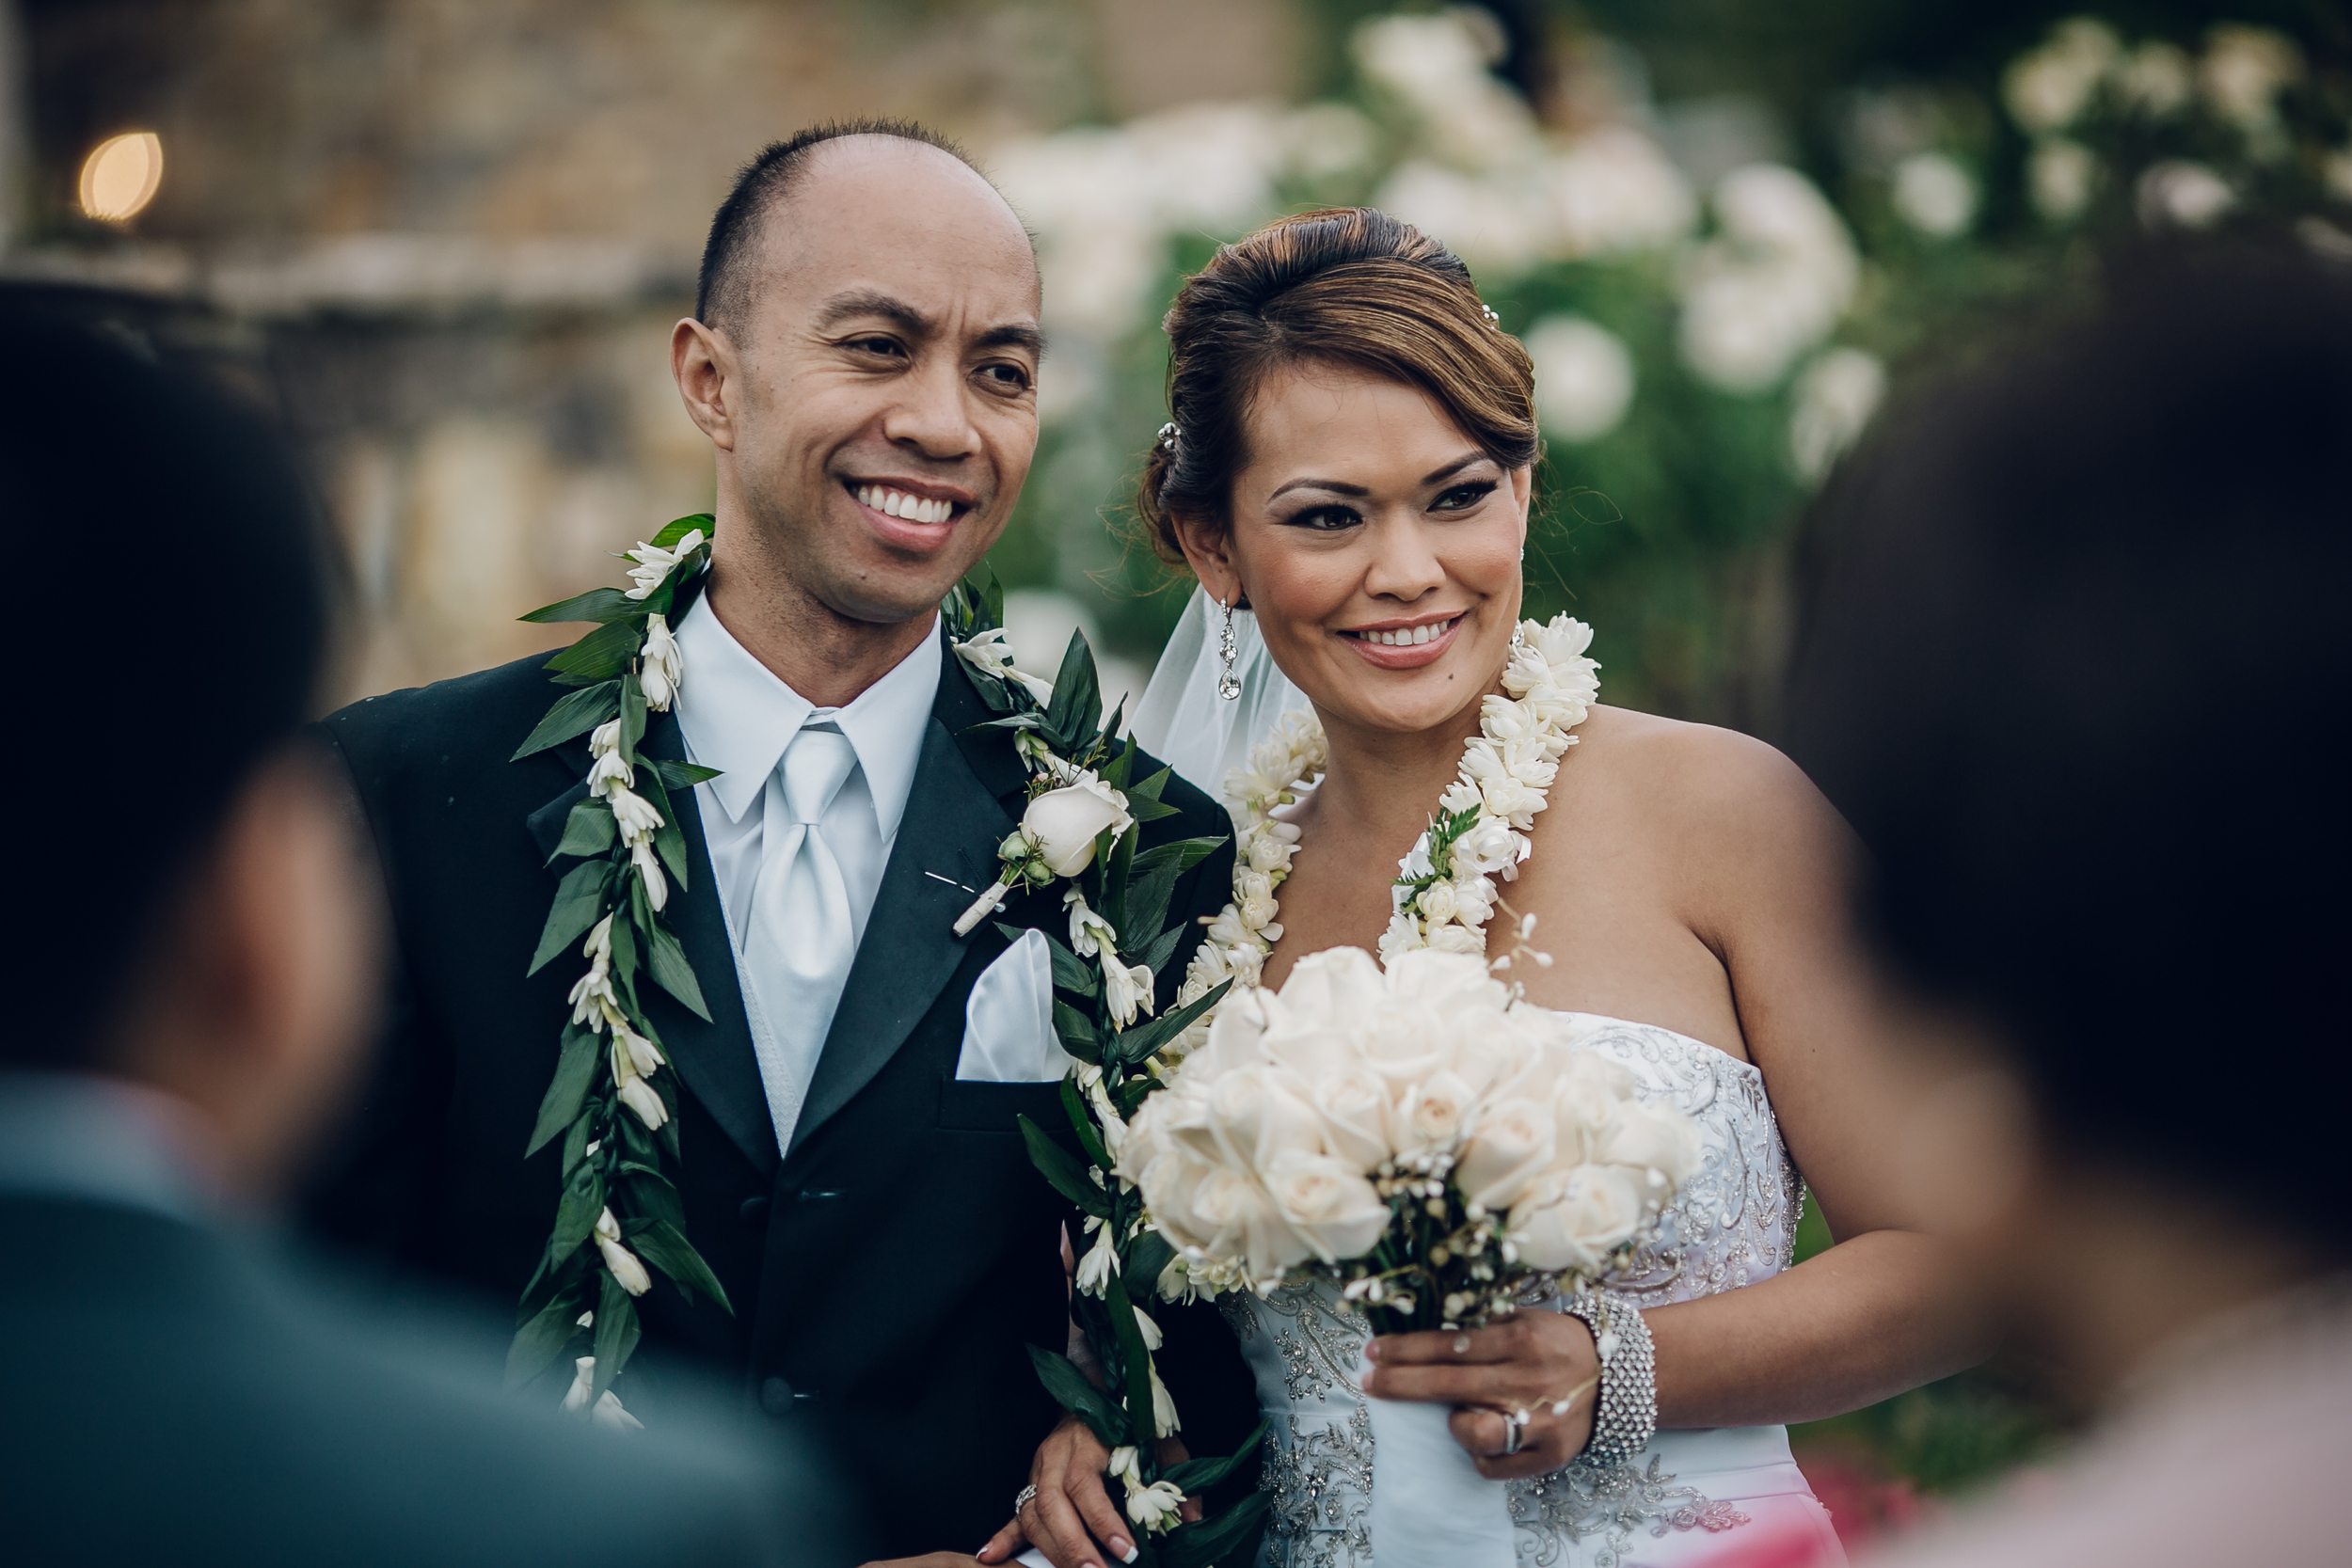 Shiela + Lester's Wedding 9-30-15 164.jpg